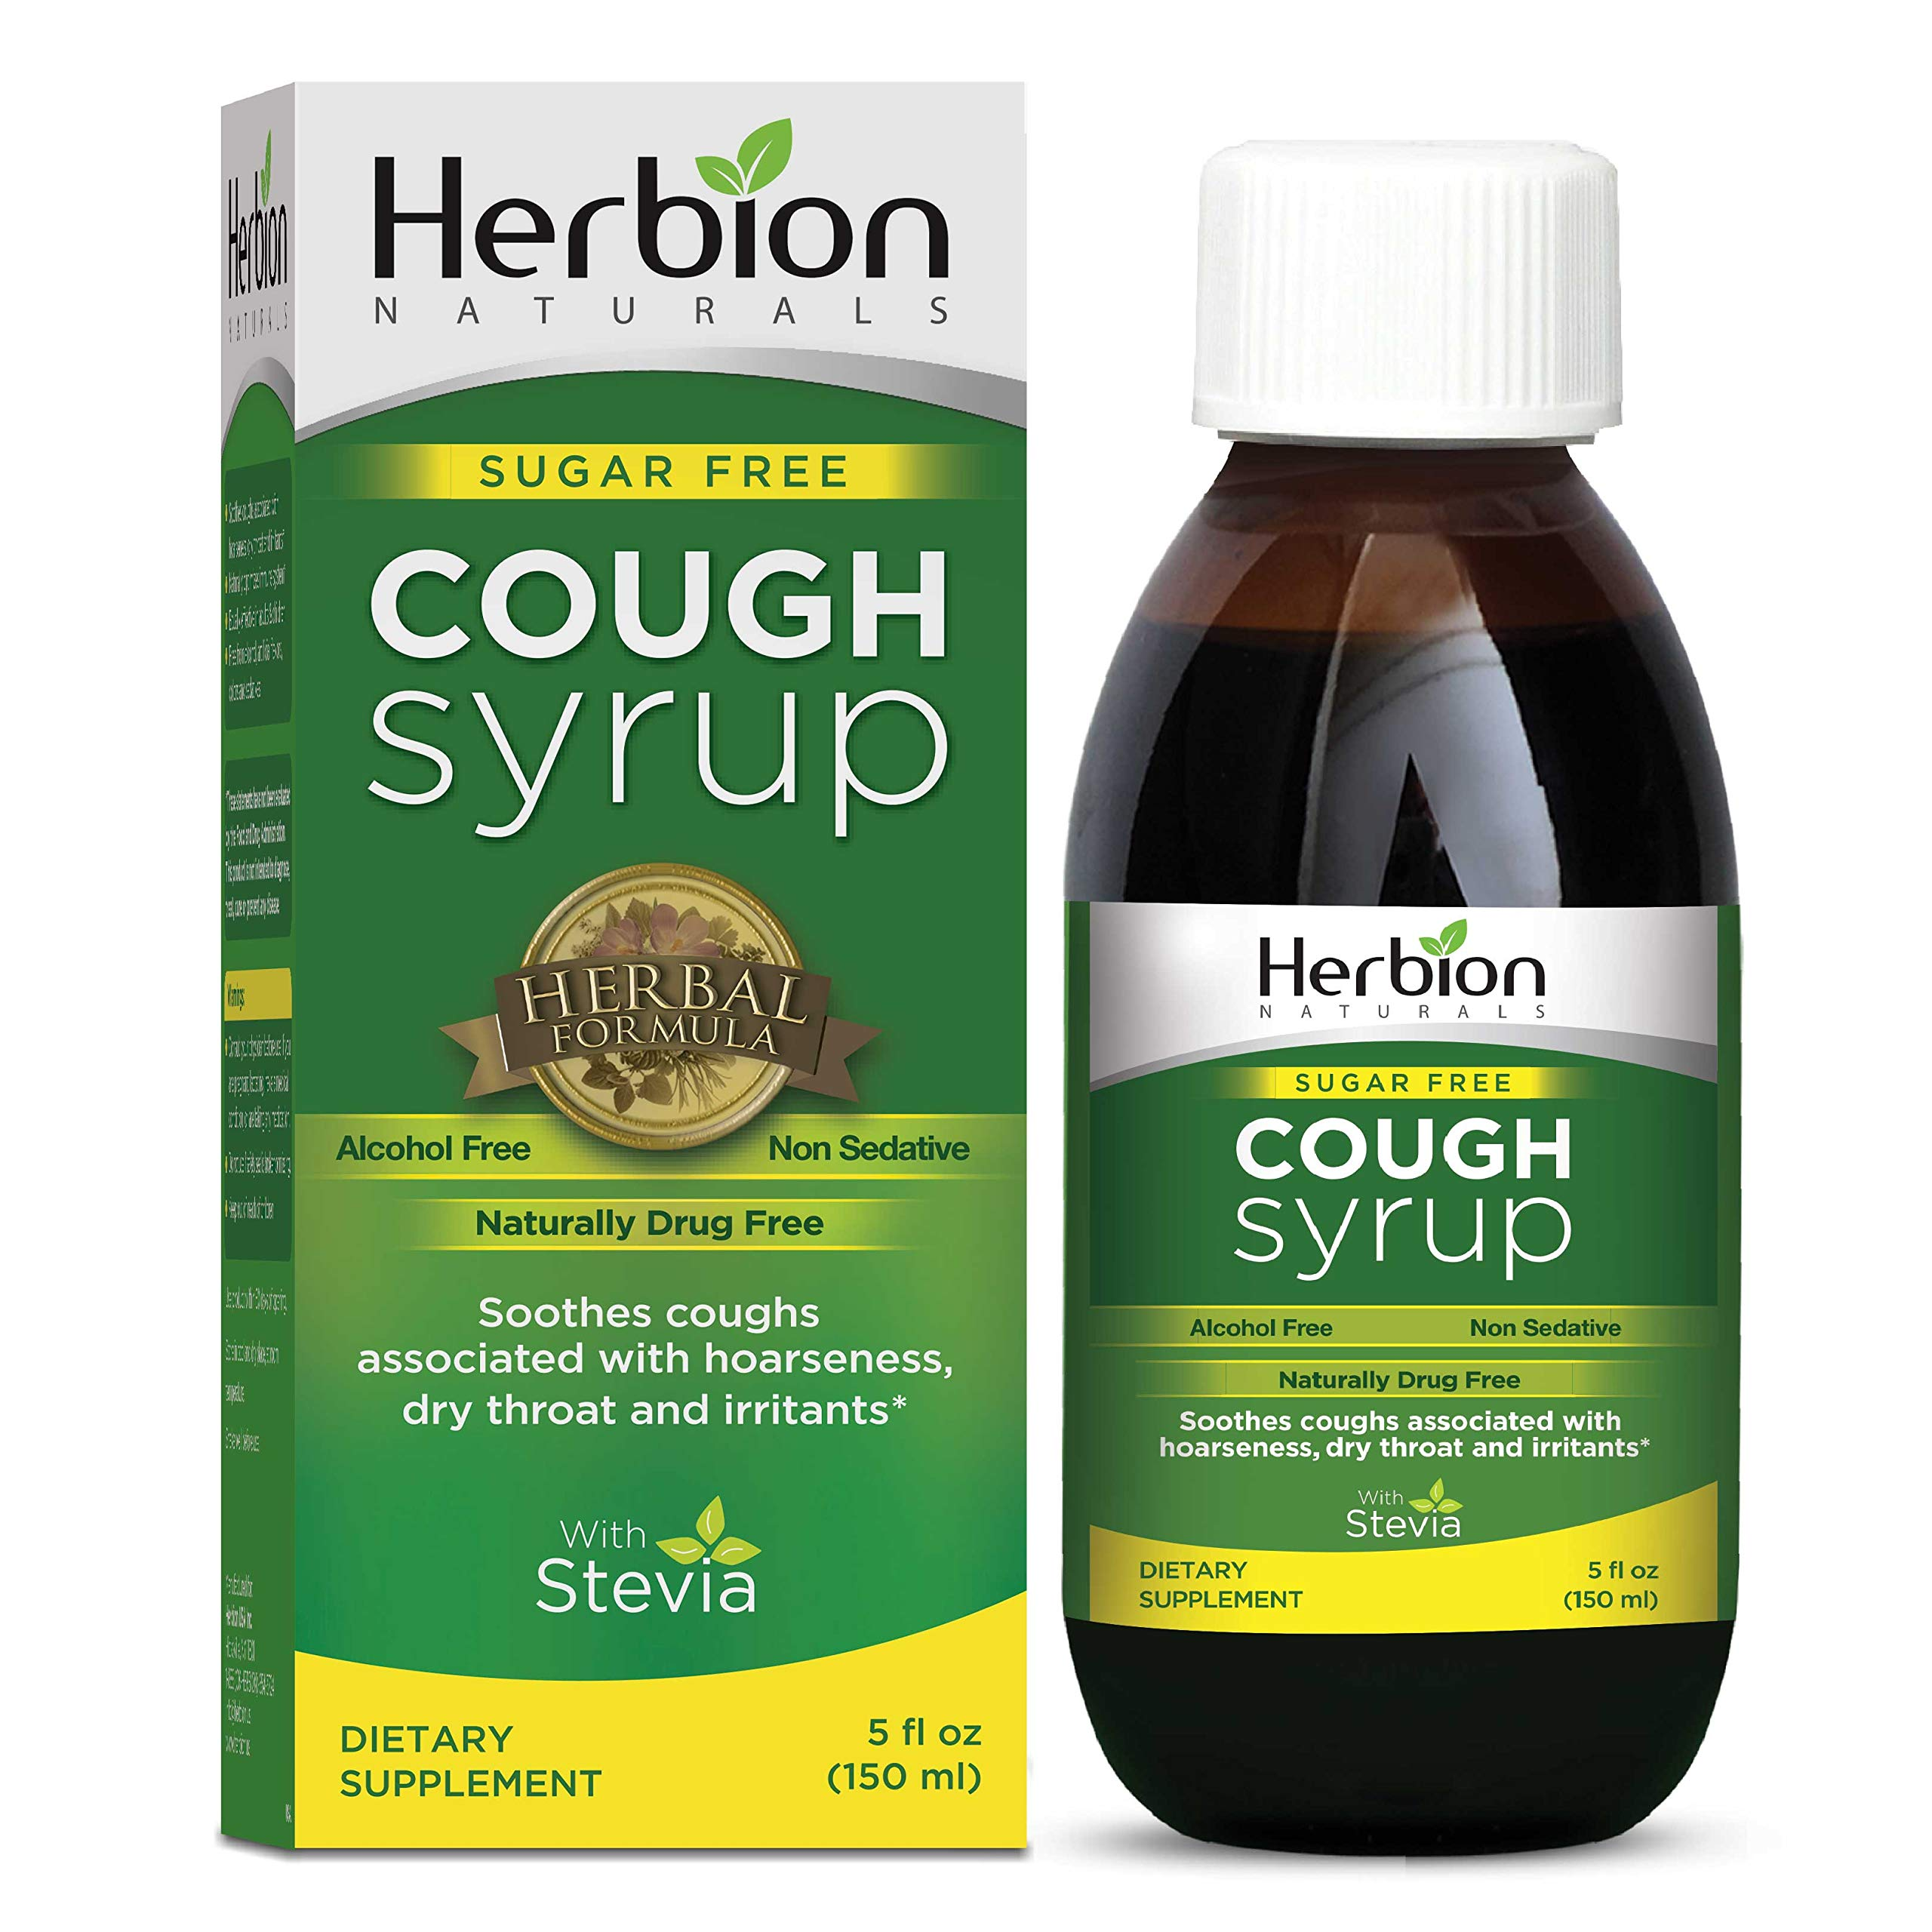 Herbion Naturals Cough Syrup with Stevia, Green, Sugar Free, 5.0 Fl Oz